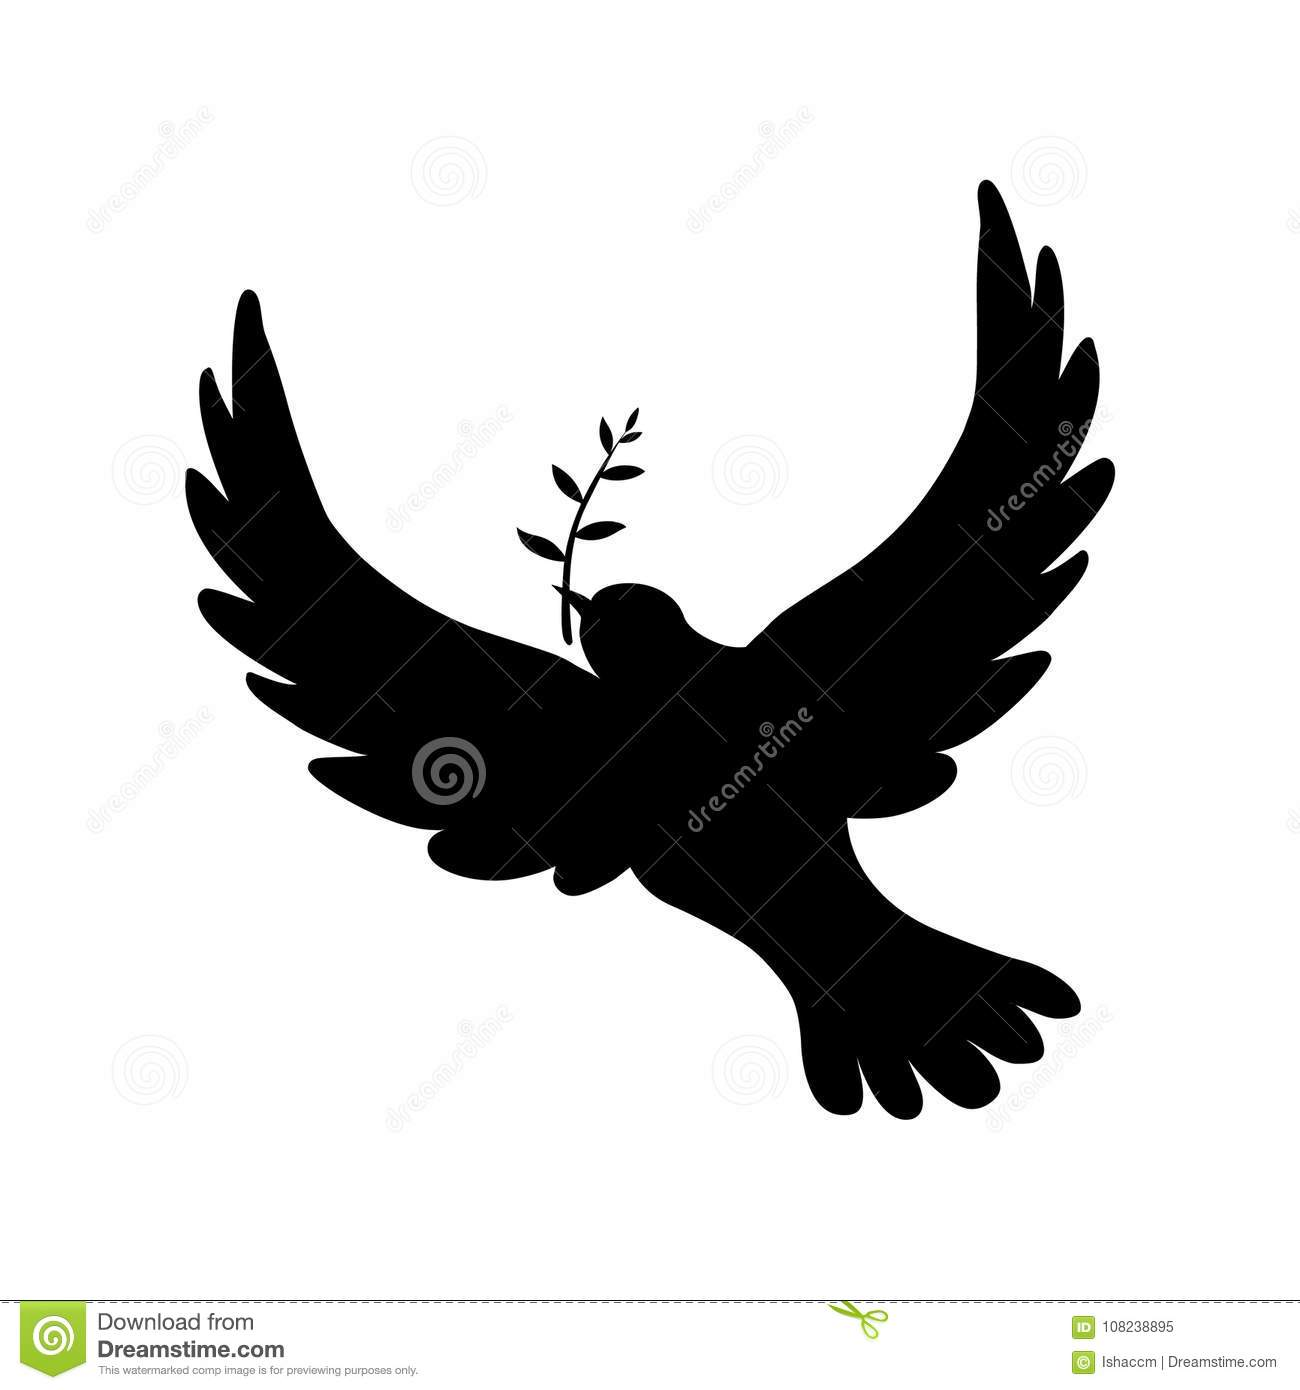 Peace Dove Silhouette Vector Illustration Of Peace Dove With